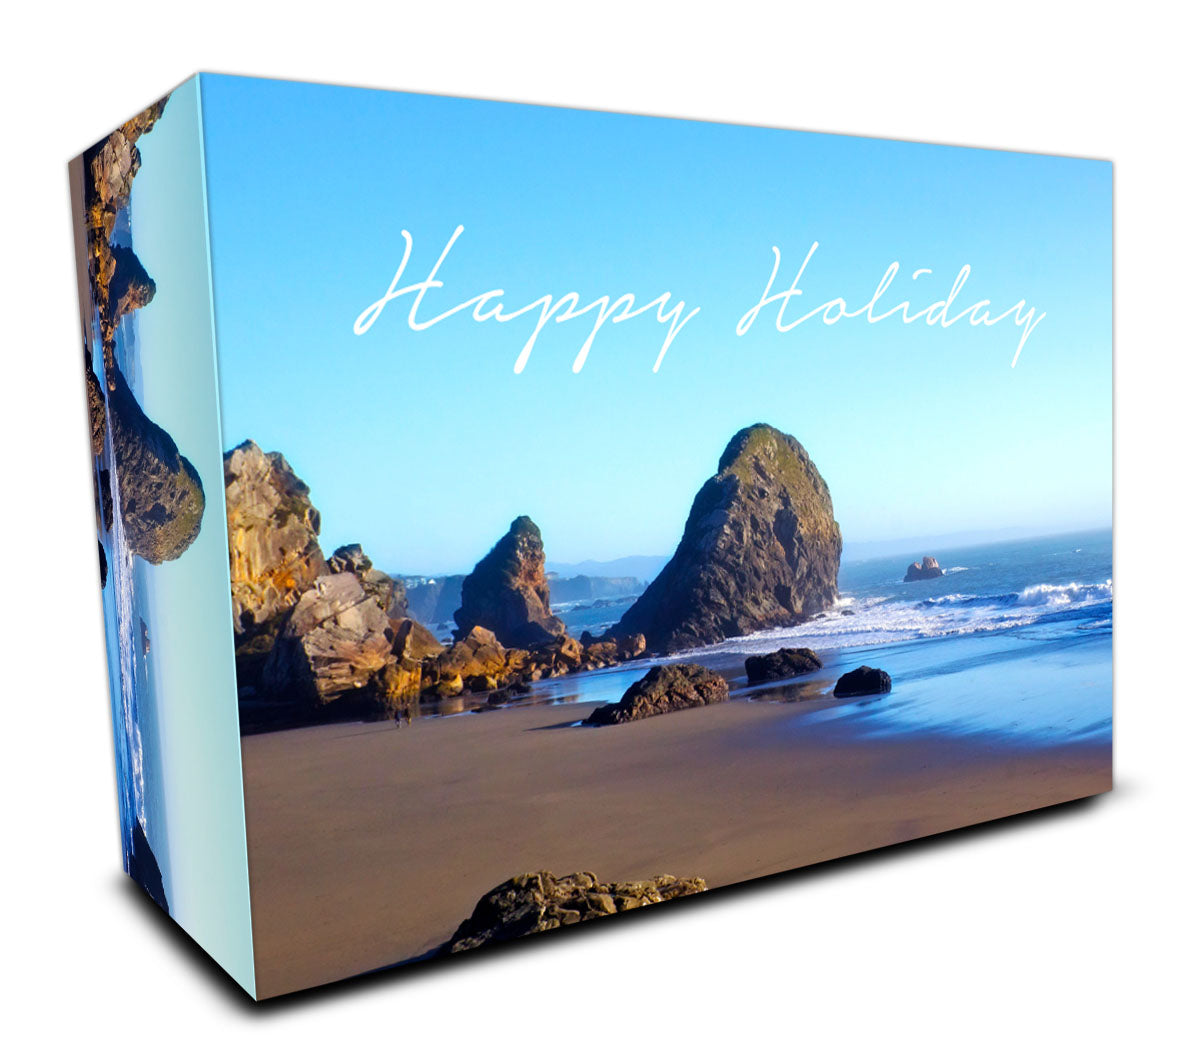 Customisable Golf Ball Packaging Box #5 - Happy Holiday